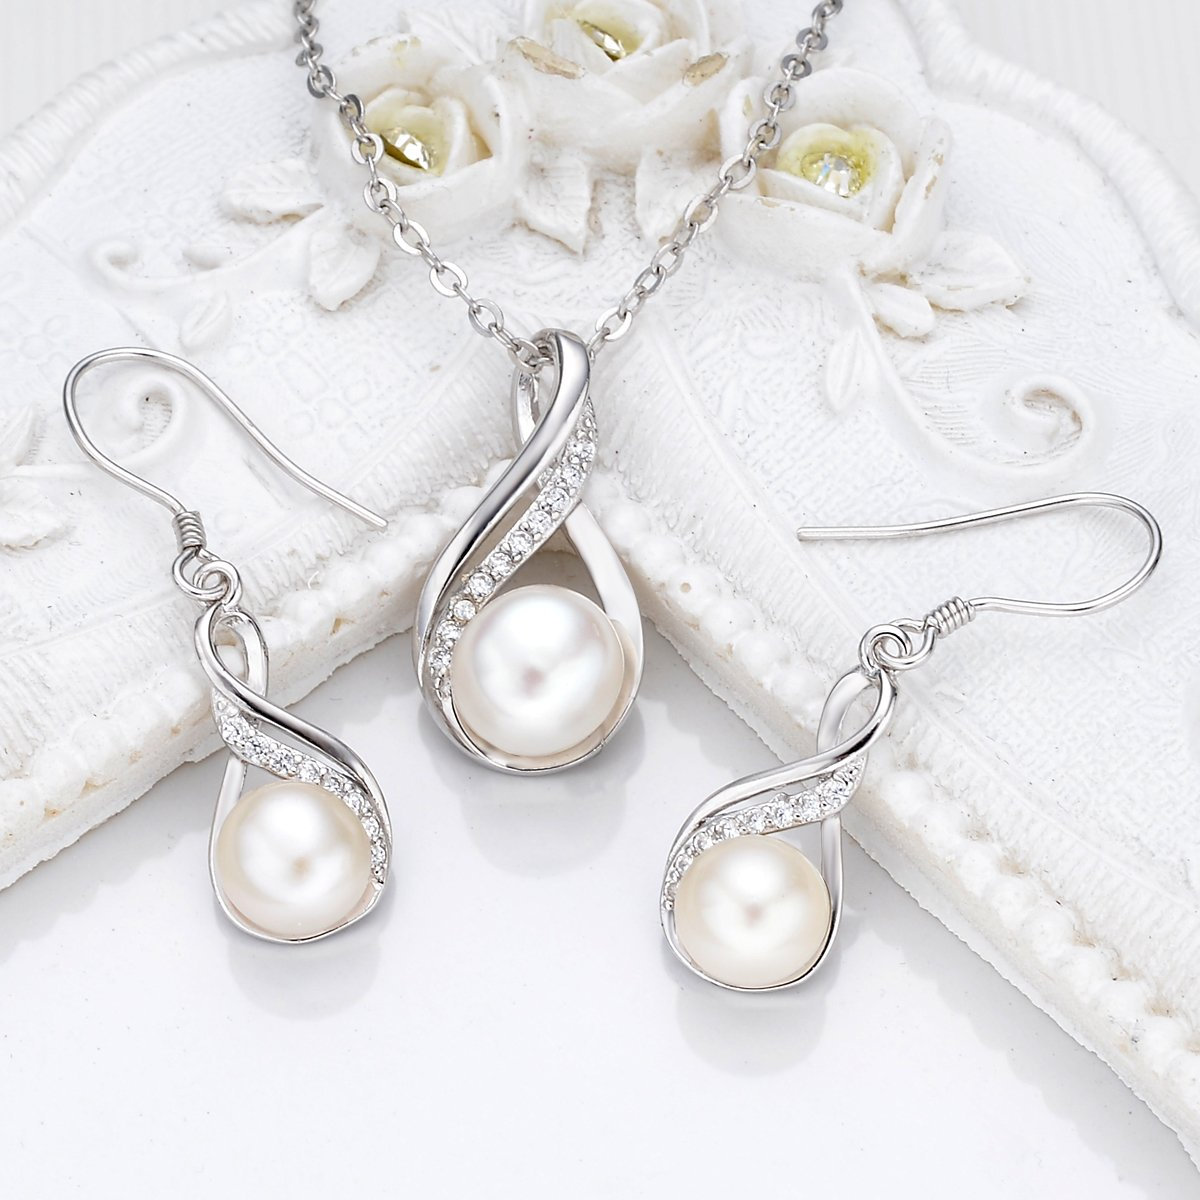 EleQueen 925 Sterling Silver CZ Cream Freshwater Cultured Pearl Infinity Bridal Necklace Hook Earrings Set Clear by EleQueen (Image #4)